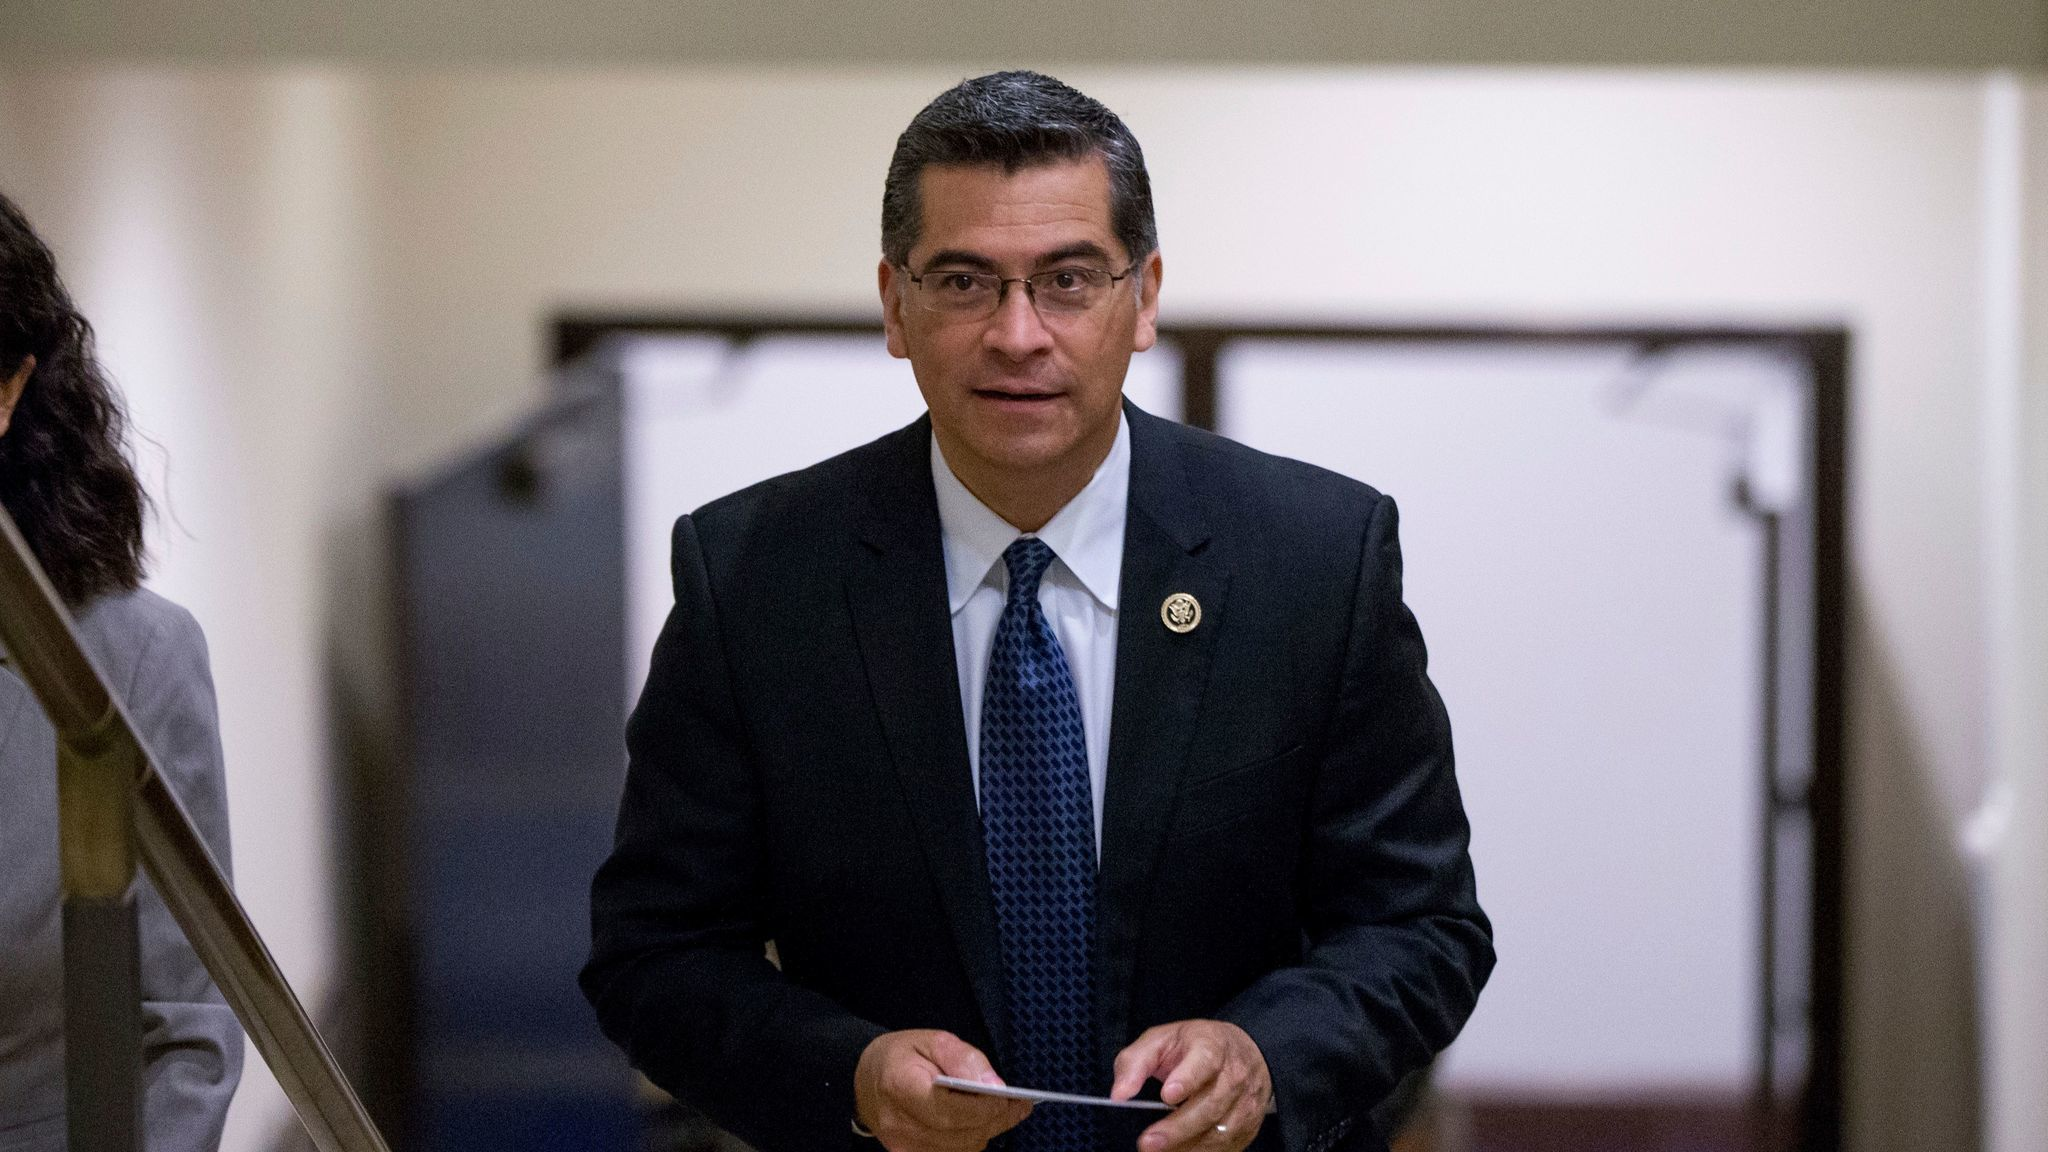 Atty. Gen. Xavier Becerra wants more information on federal enforcement of immigration laws. (Andrew Harnik / Associated Press)